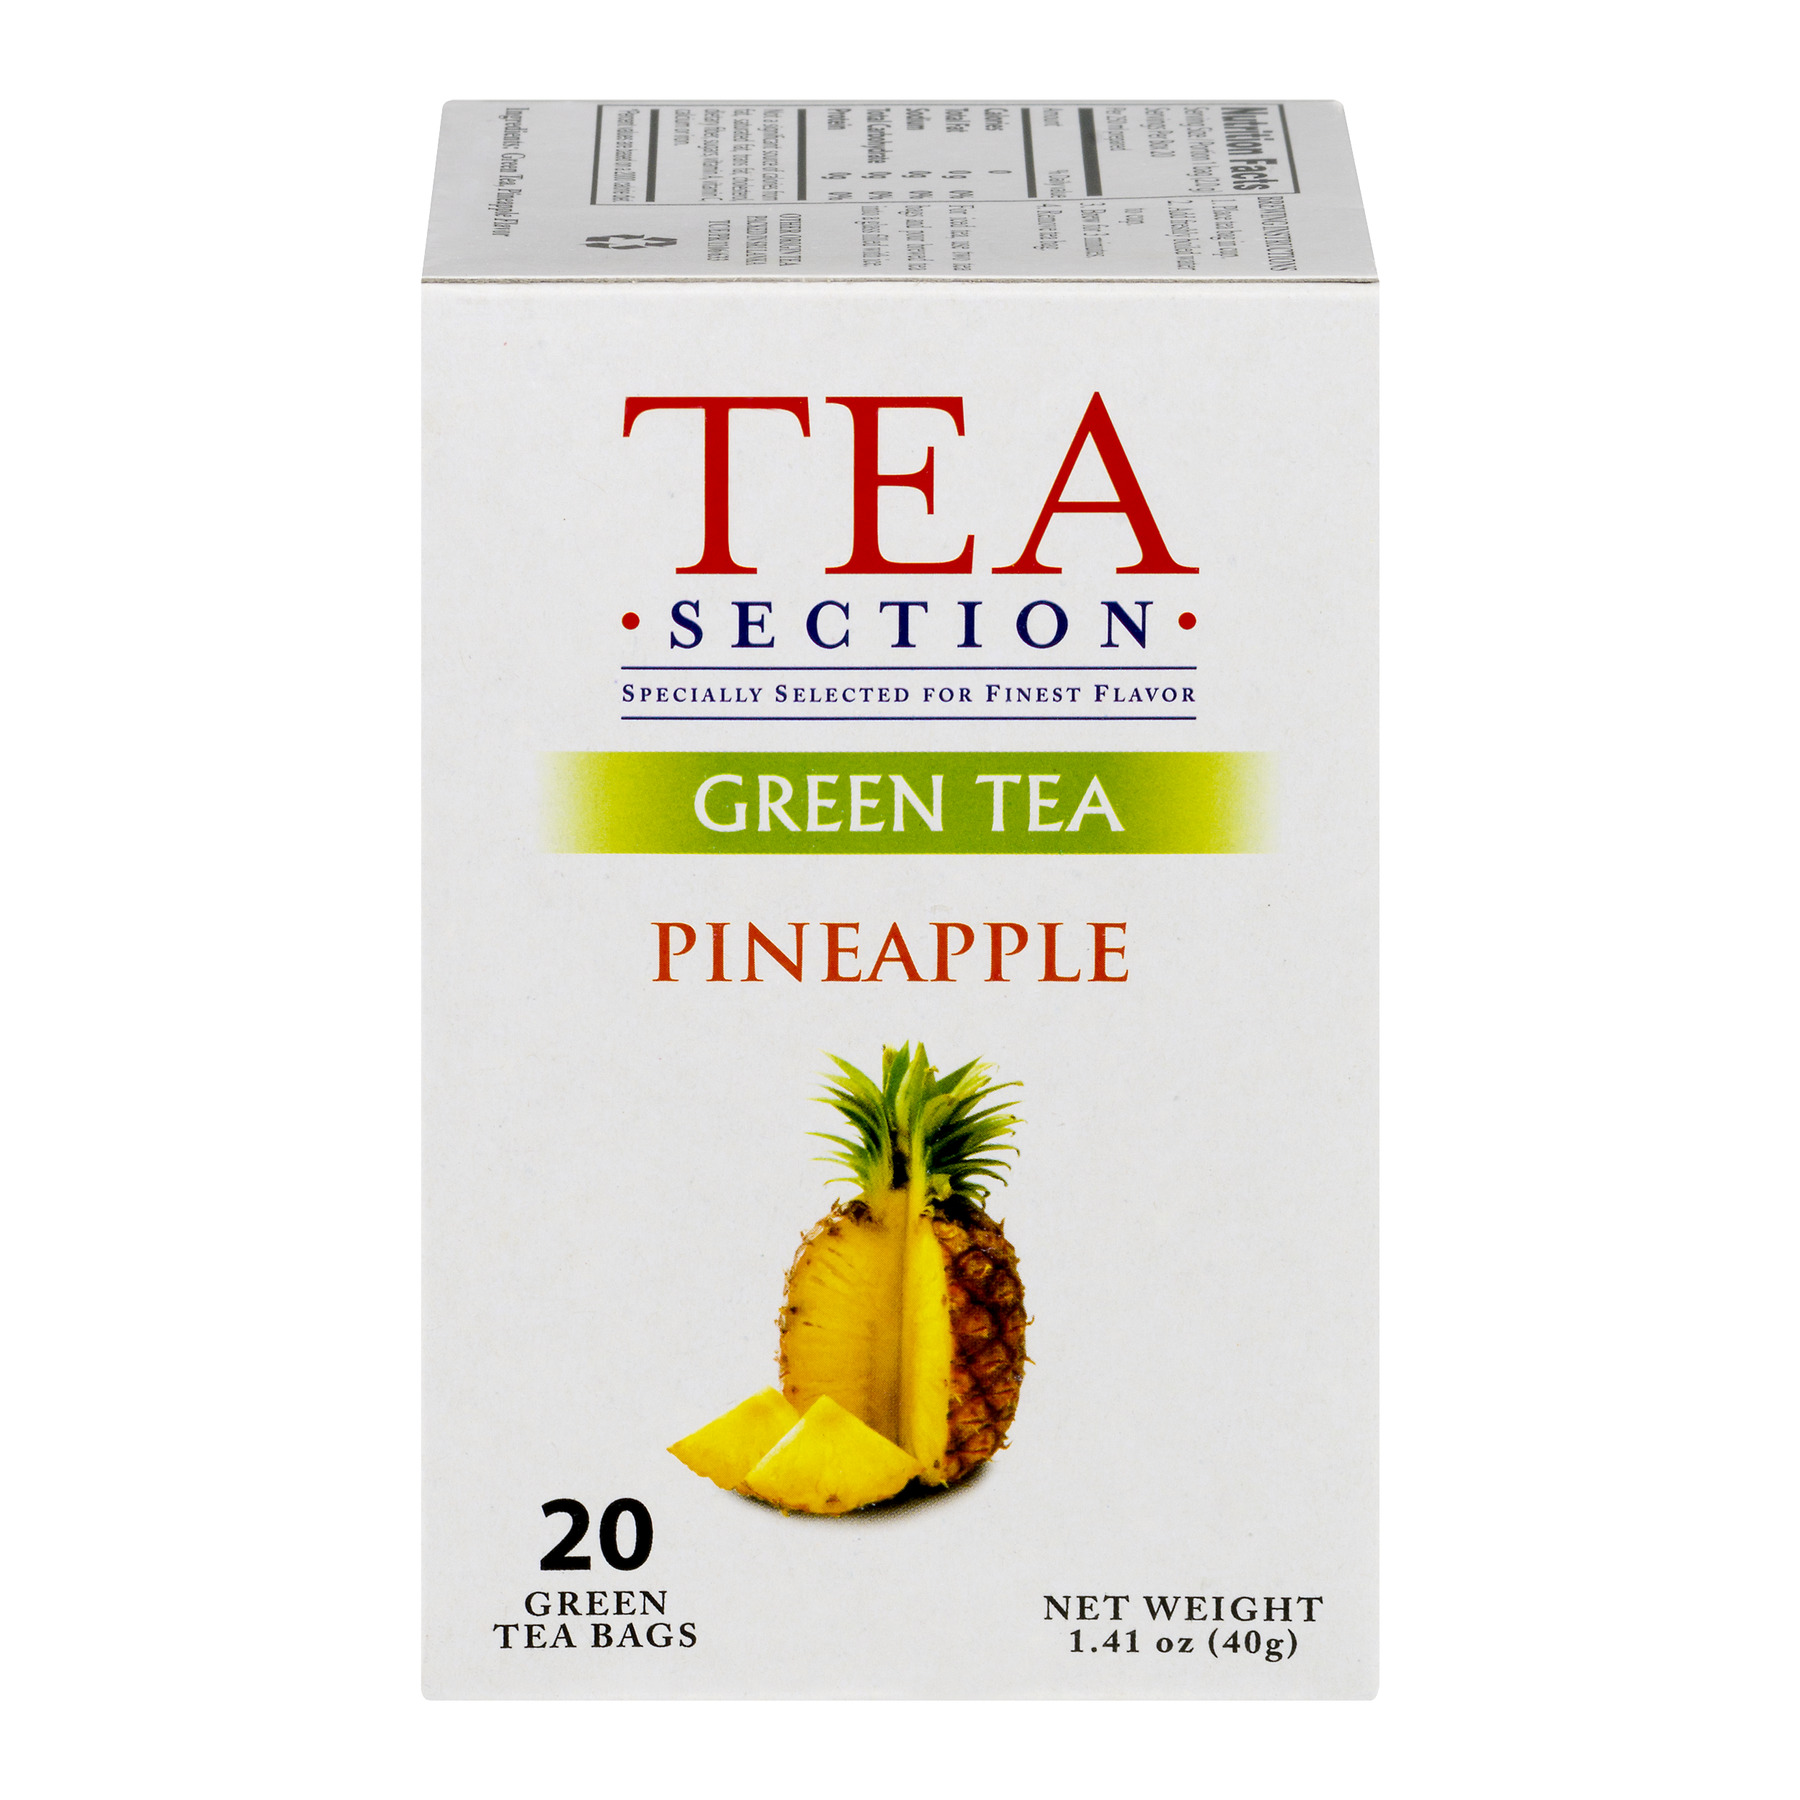 Tea Section Pineapple Green Tea Bags, 20 count, 1.41 oz